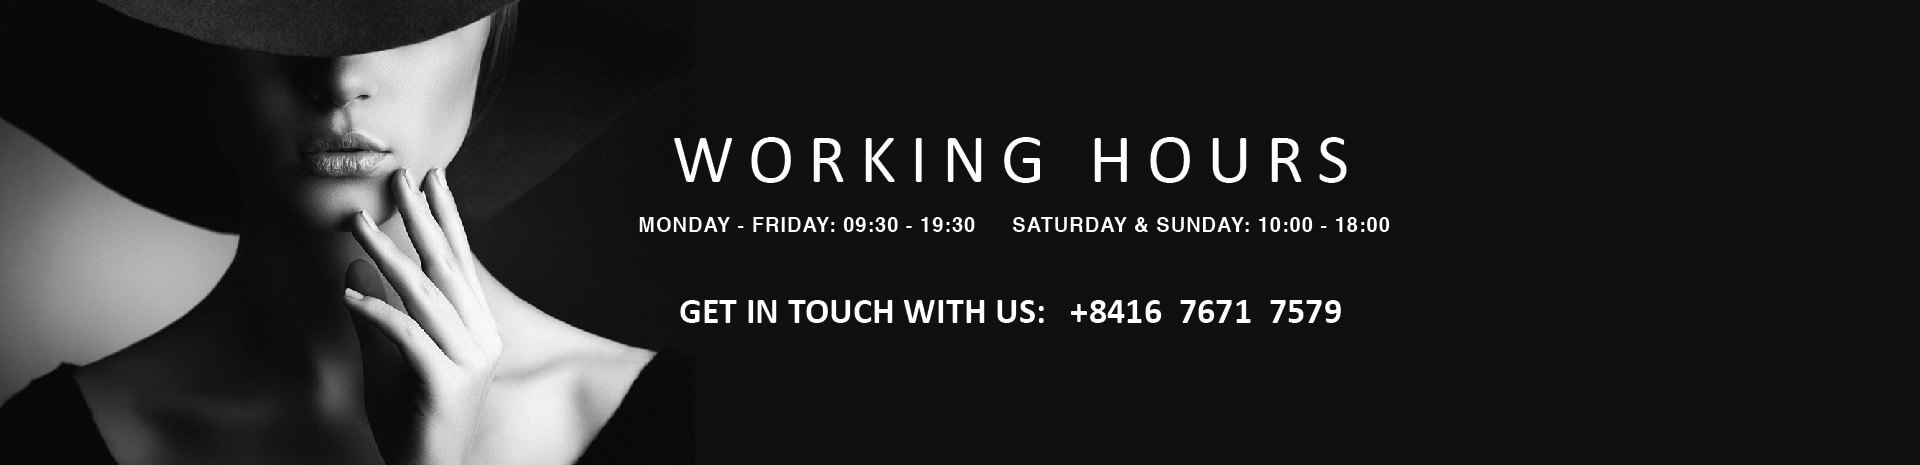 SIAN Working Hours